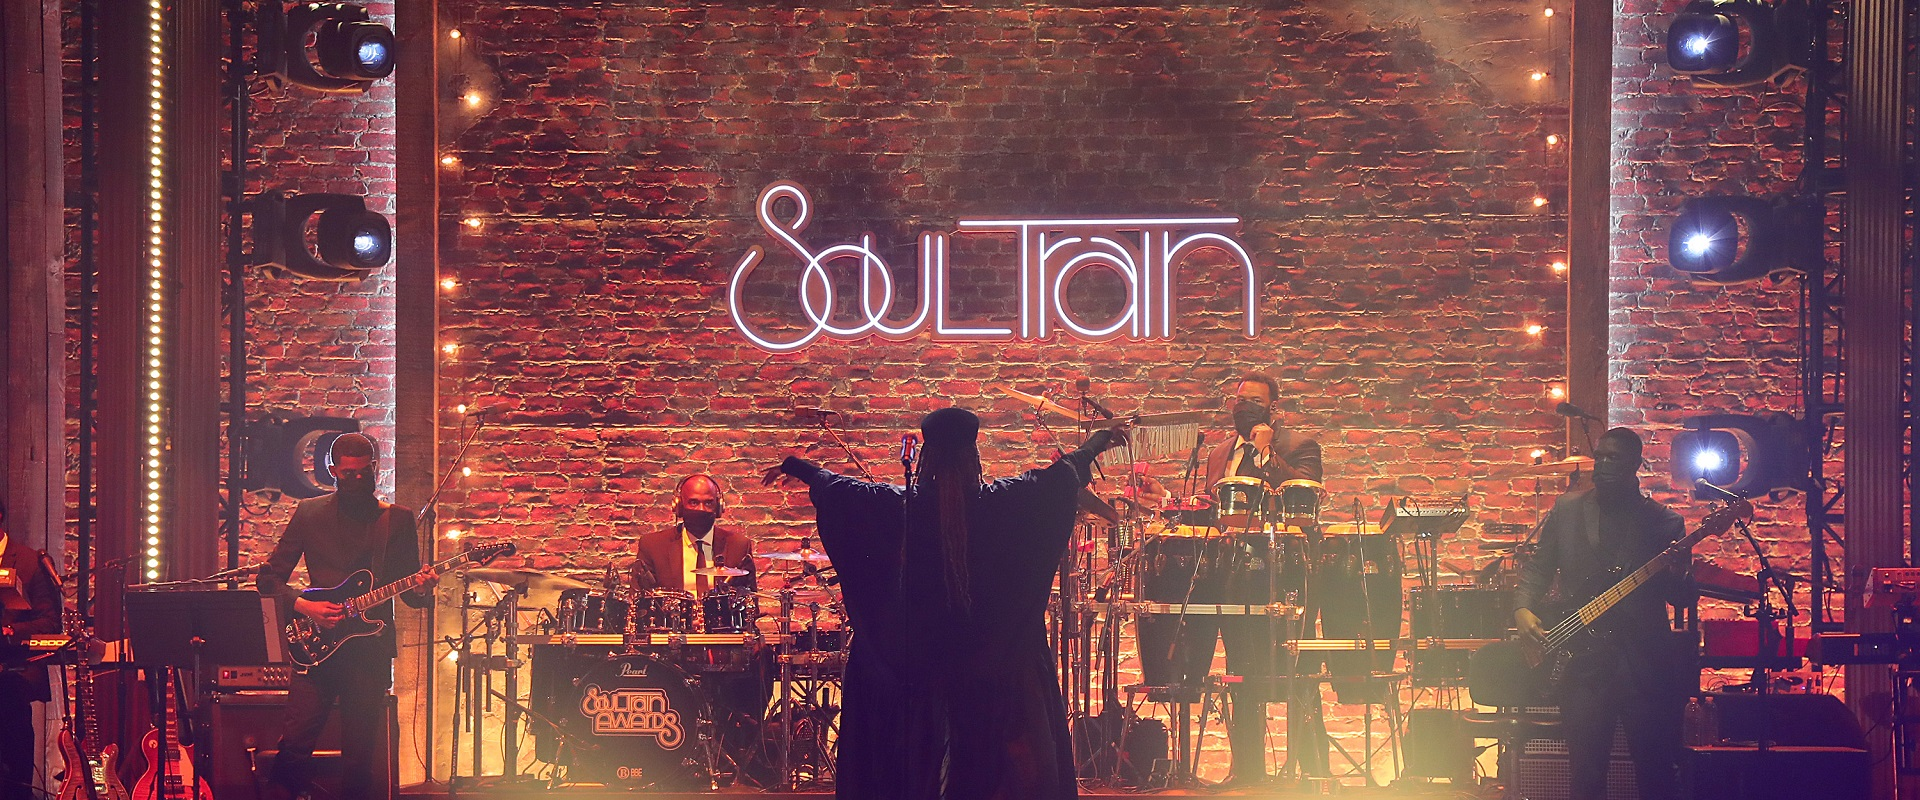 R&B REIGNS AT THE 2020 'SOUL TRAIN AWARDS'